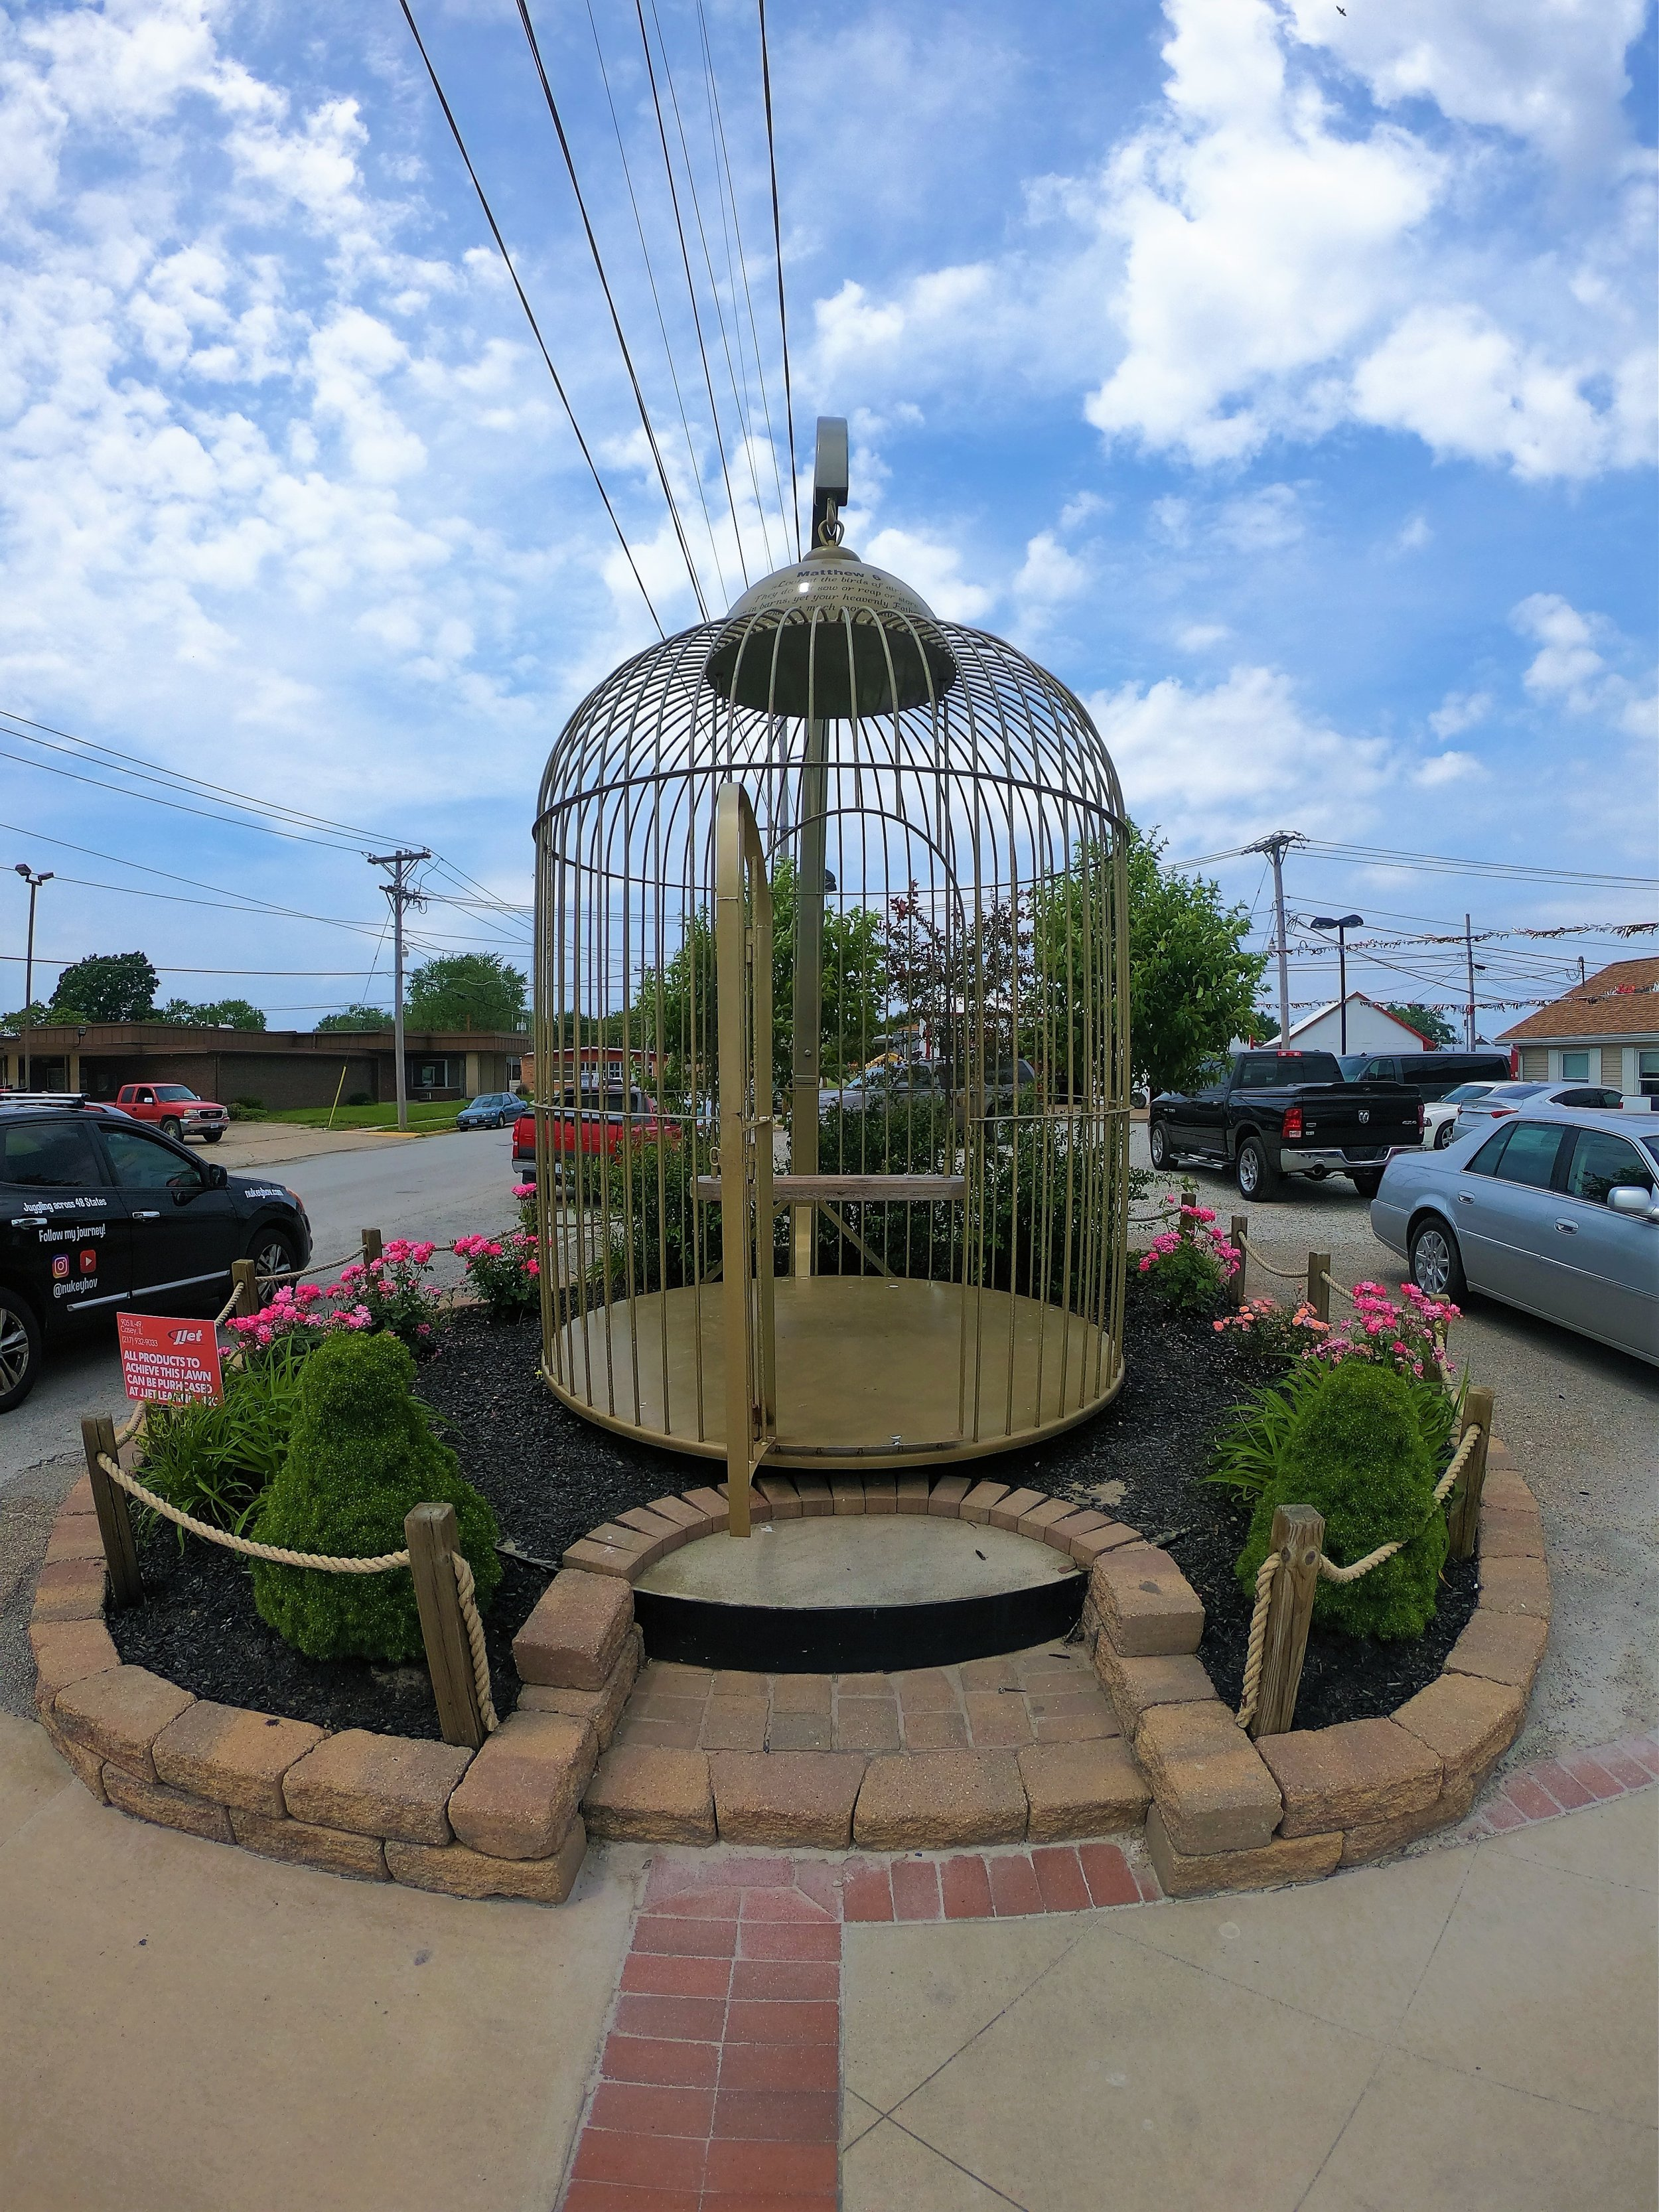 World's Largest Birdcage in Casey, Illinois